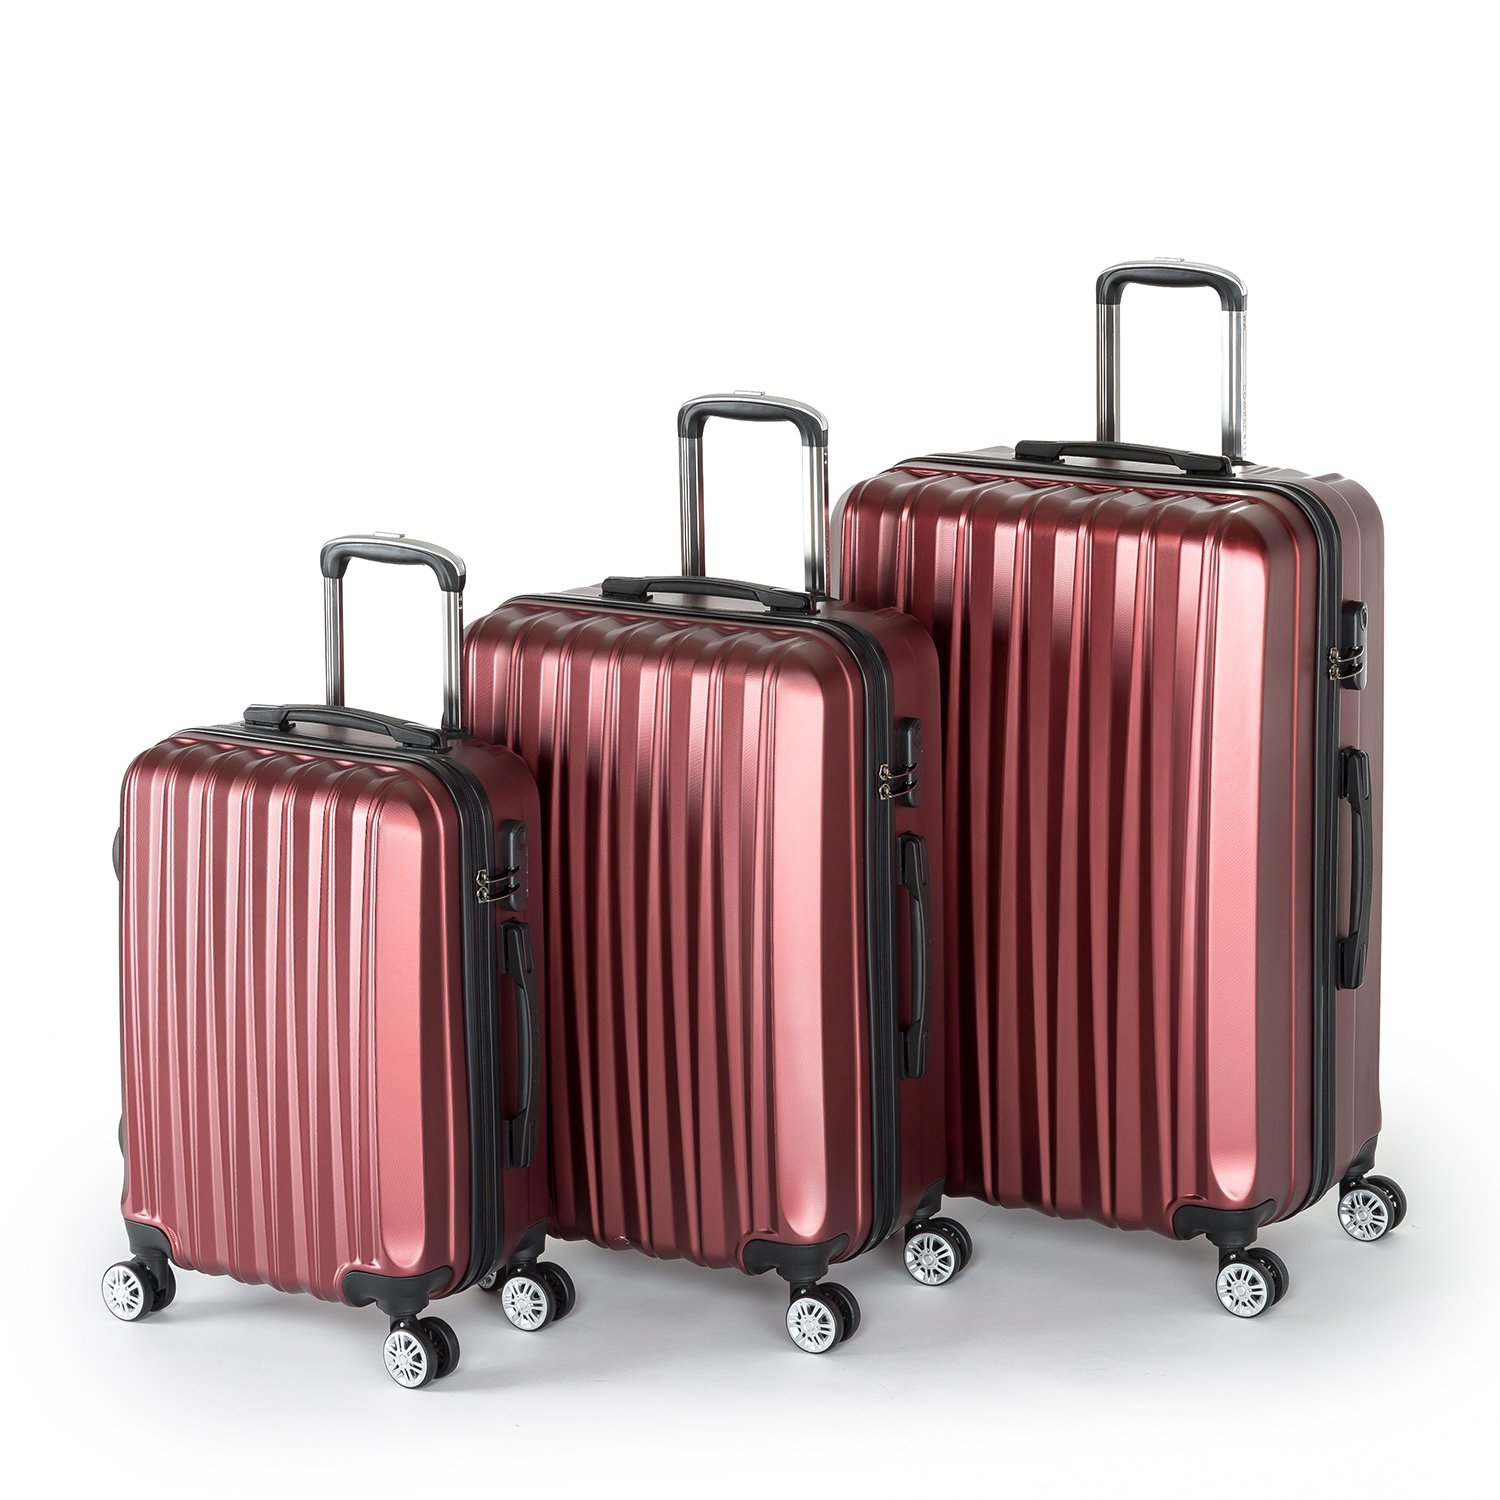 Compaclite Voyager ABS + PC 3 Piece Luggage Set Lightweight Spinner Suitcases, Burgundy by Compaclite